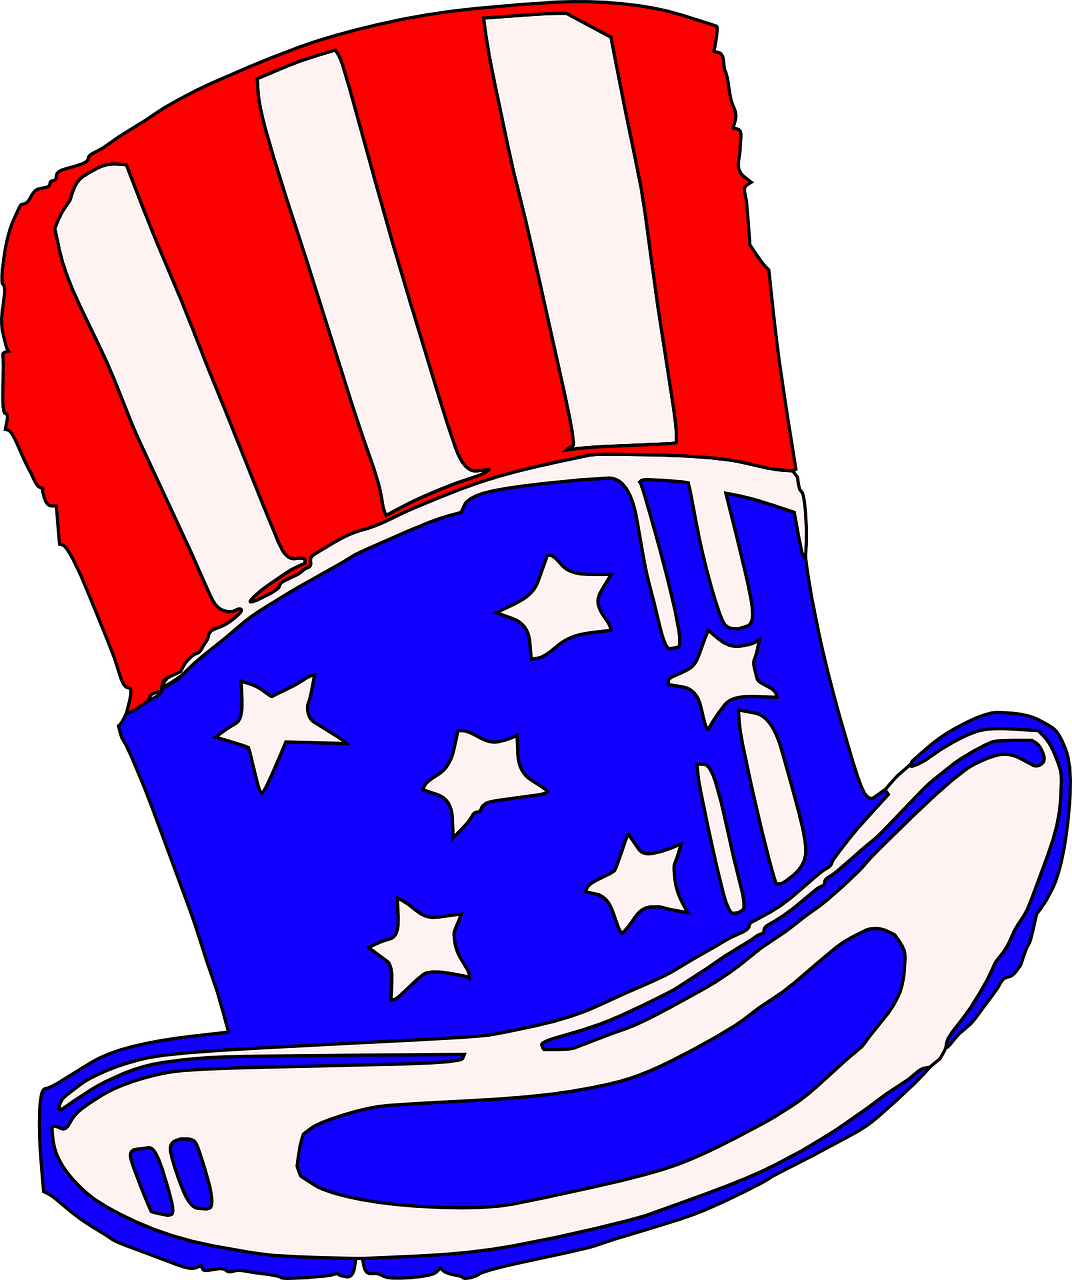 topper uncle sam united states free photo